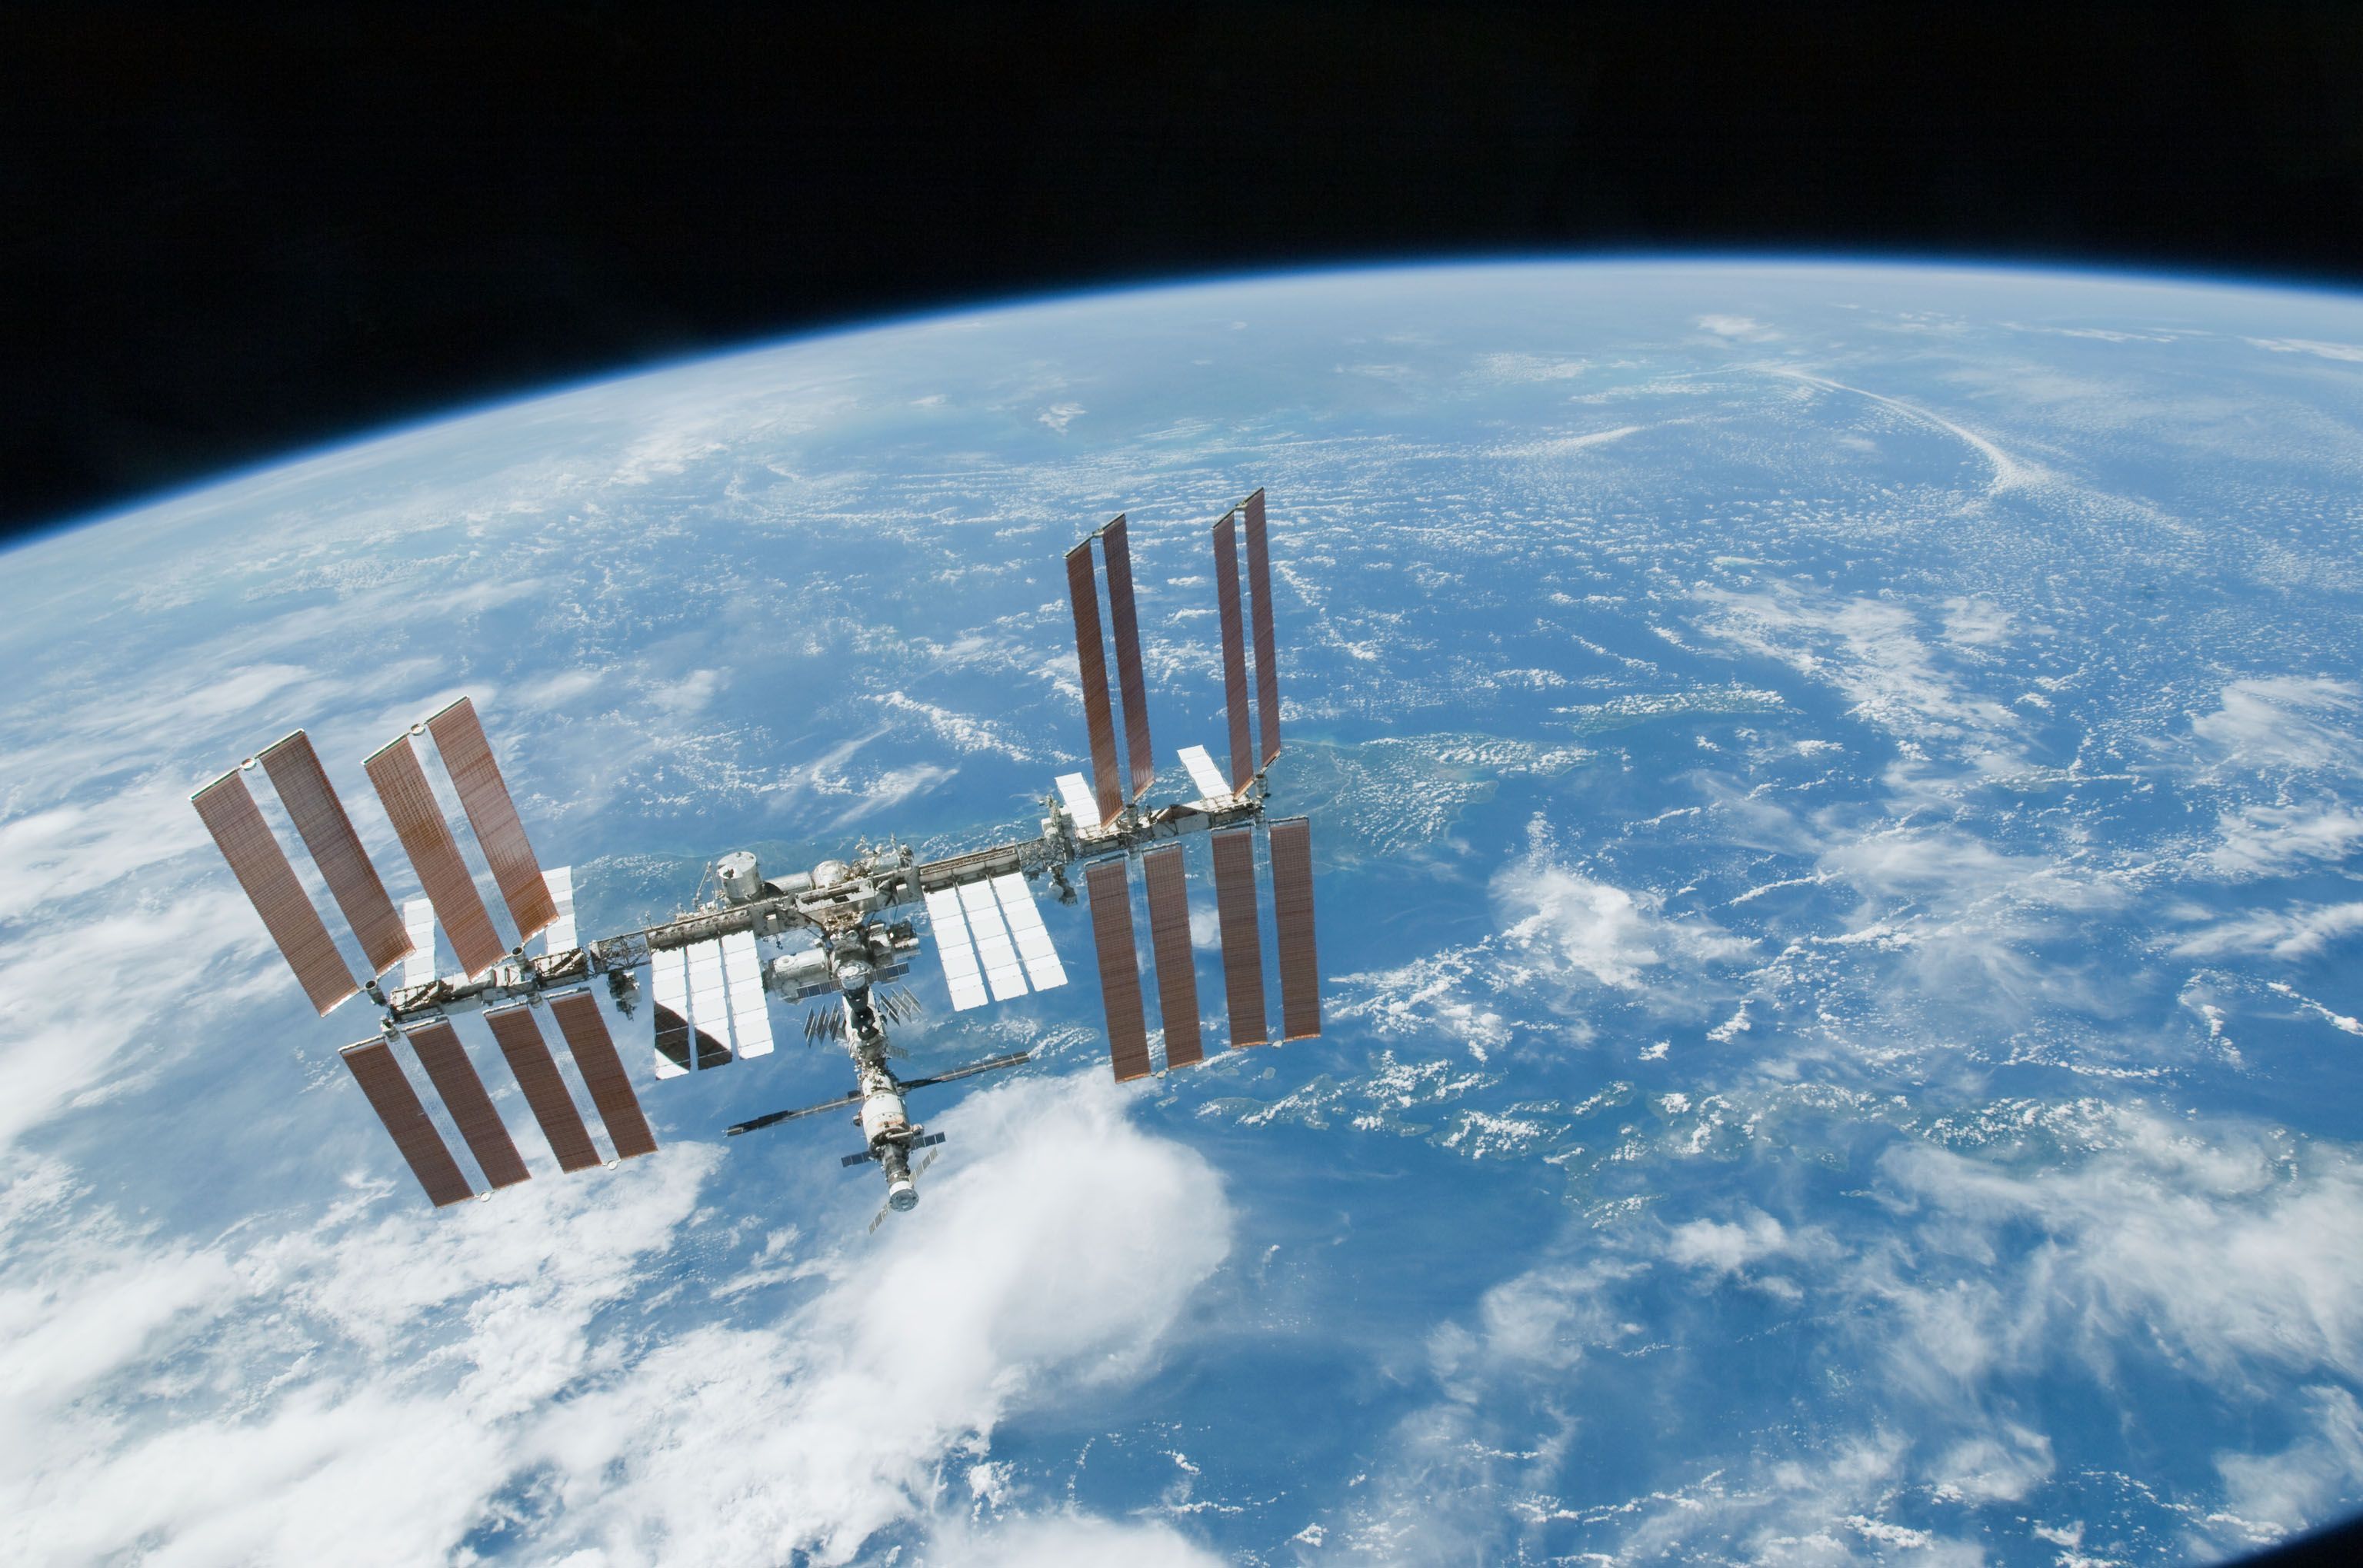 Space_Station_over_Earth.jpg